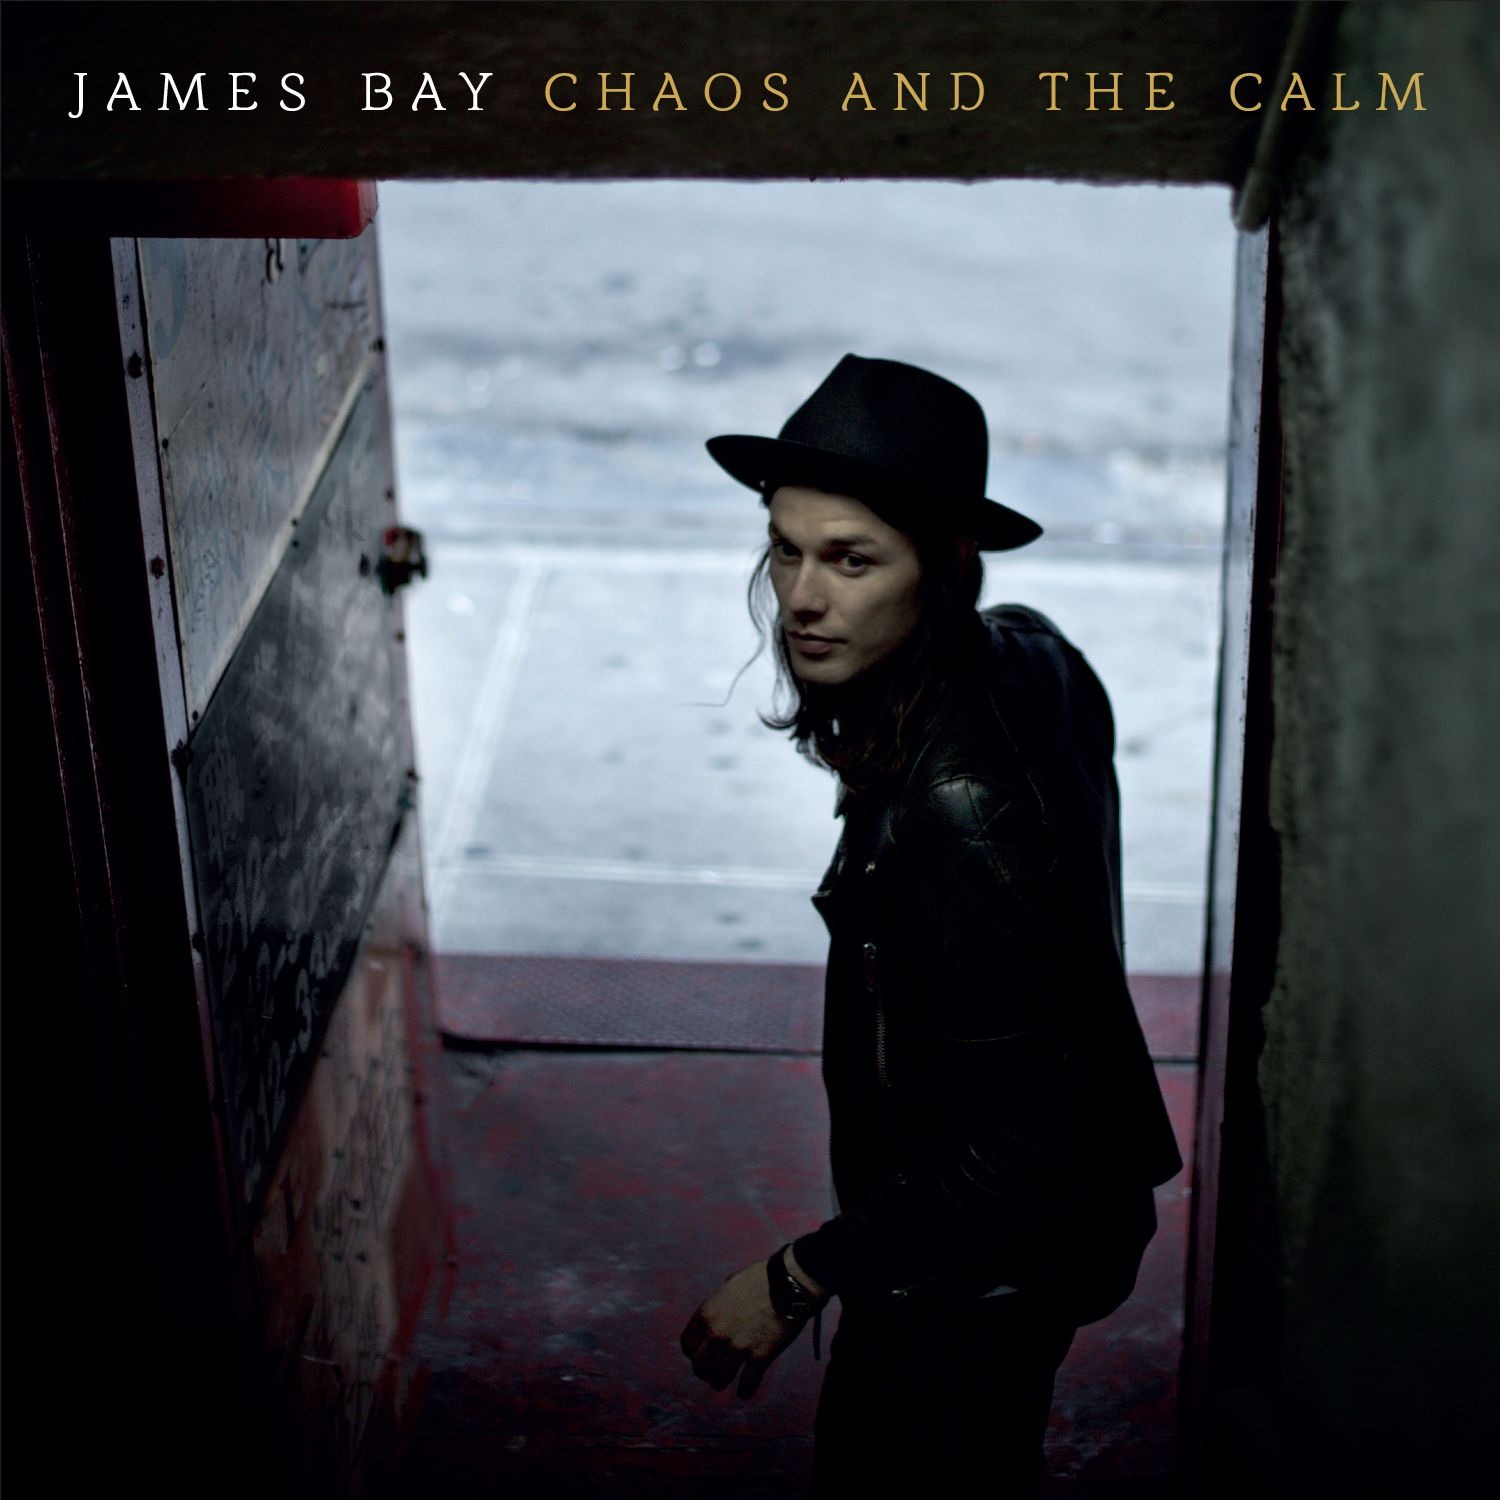 James Bay - Chaos And The Calm album cover